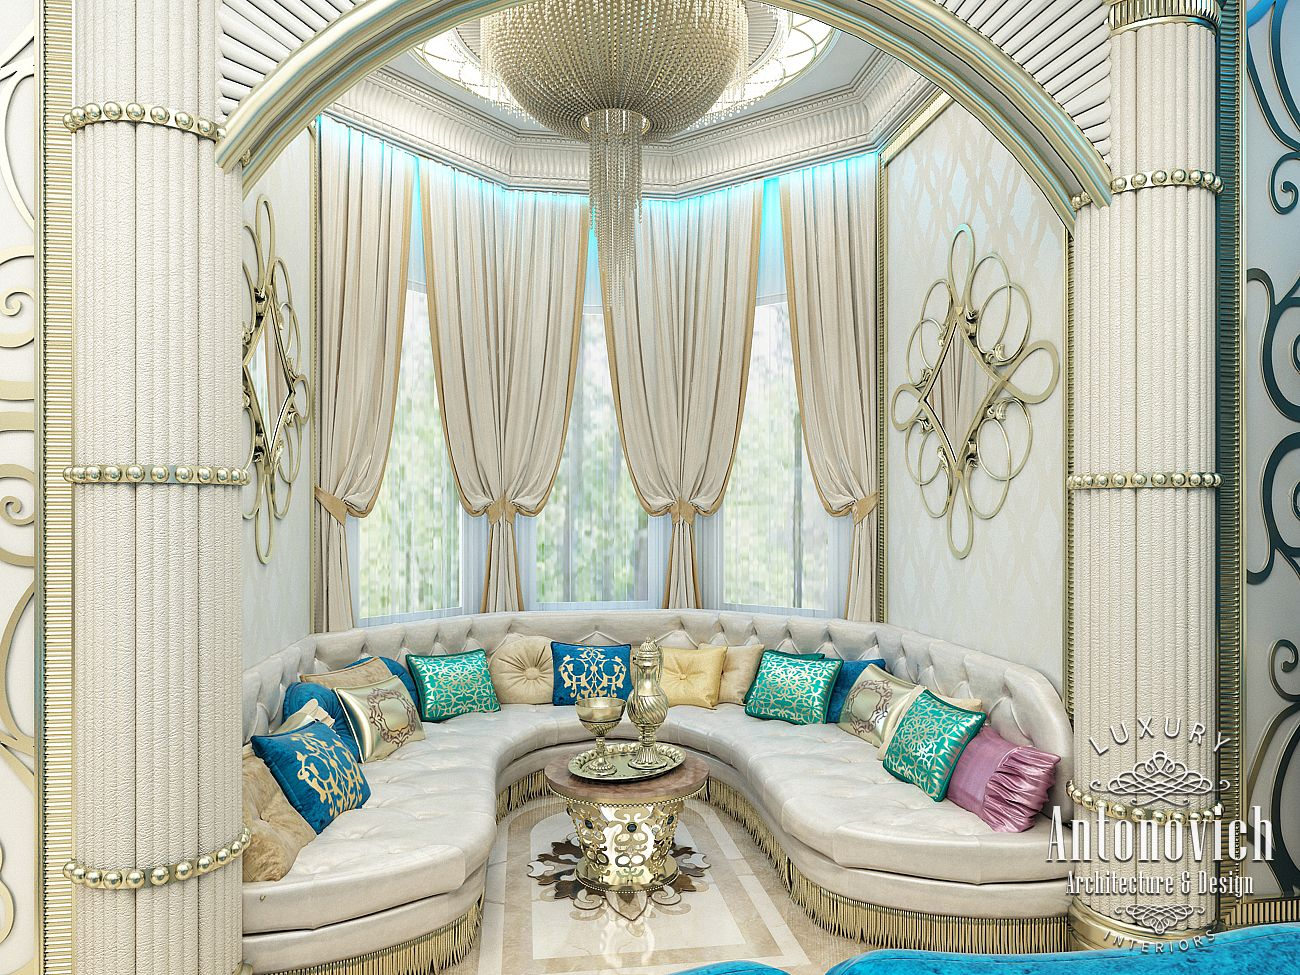 Luxury antonovich design uae interior in oriental style for Decoration maison islam